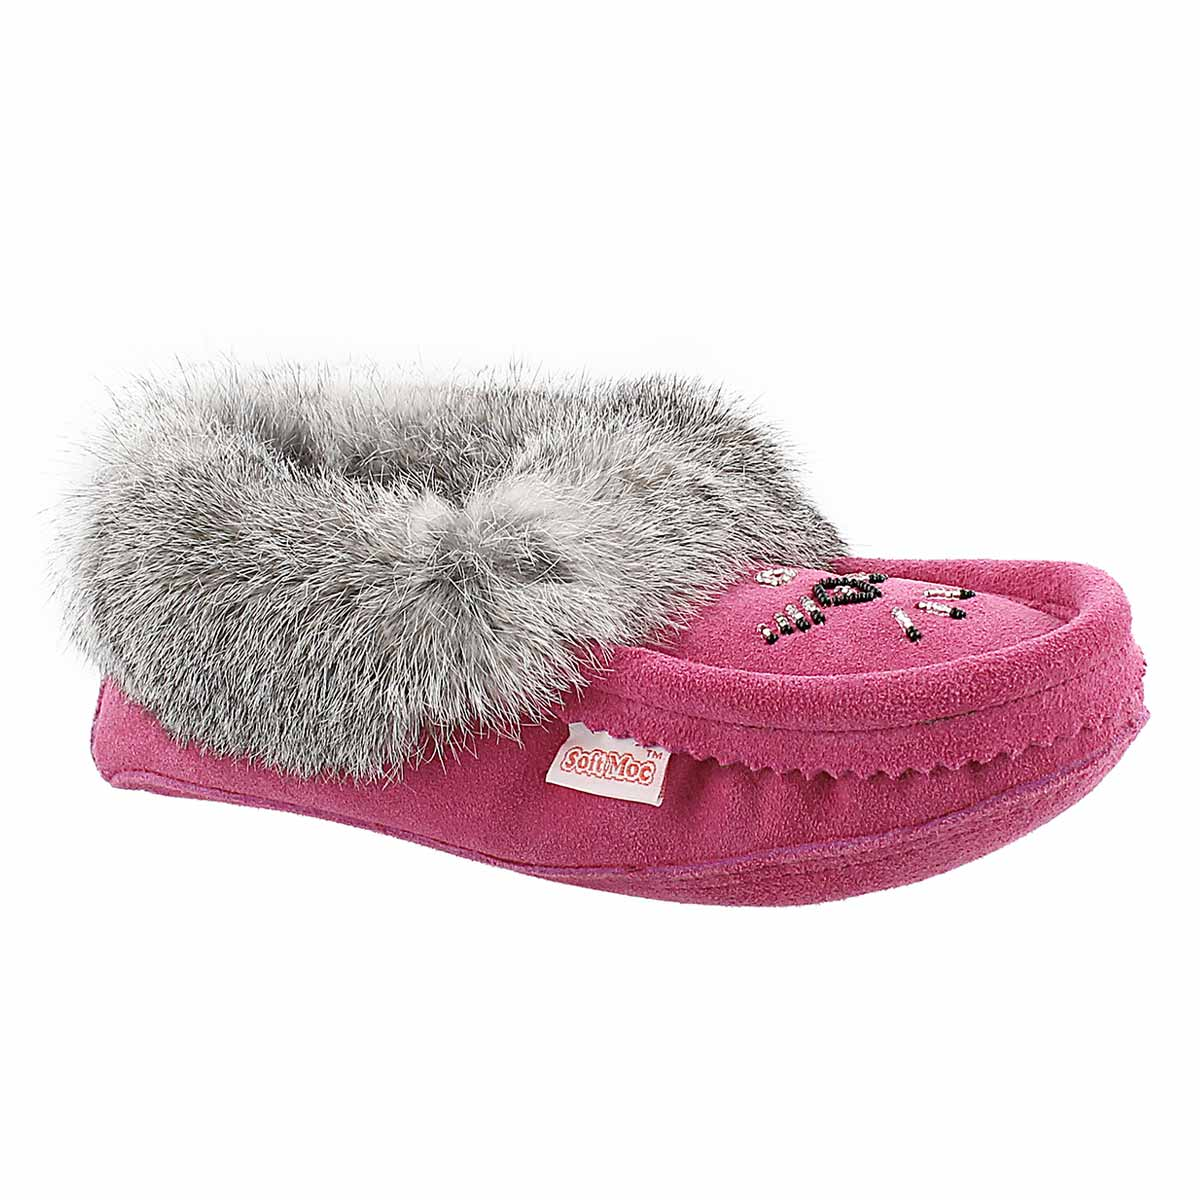 Lds fuchsia rabbit fur moccasin